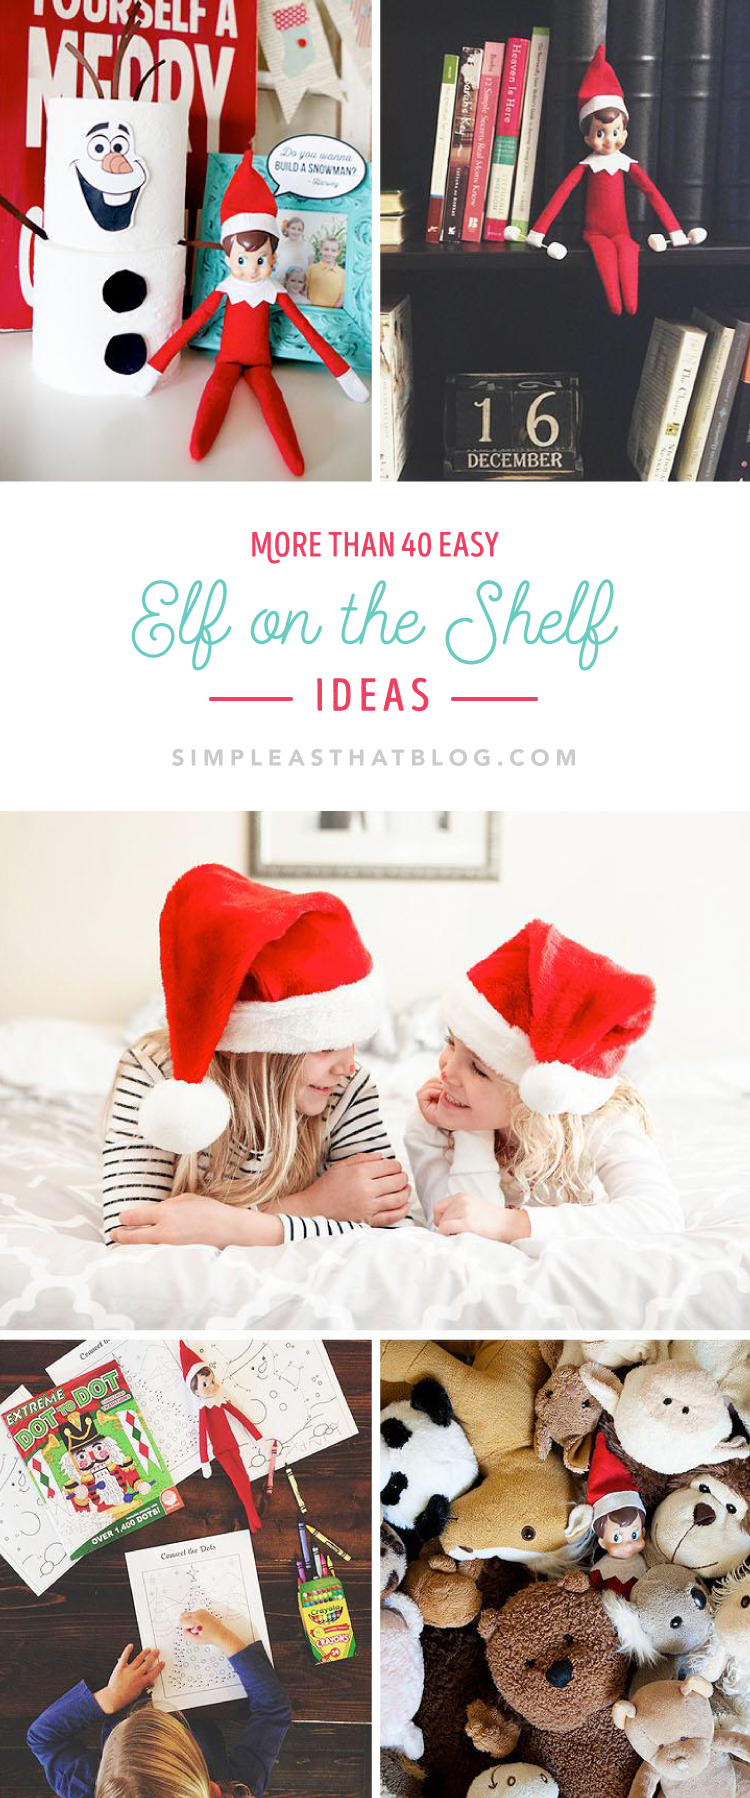 01_RebeccaCooper_ElfOnTheShelf_Ideas